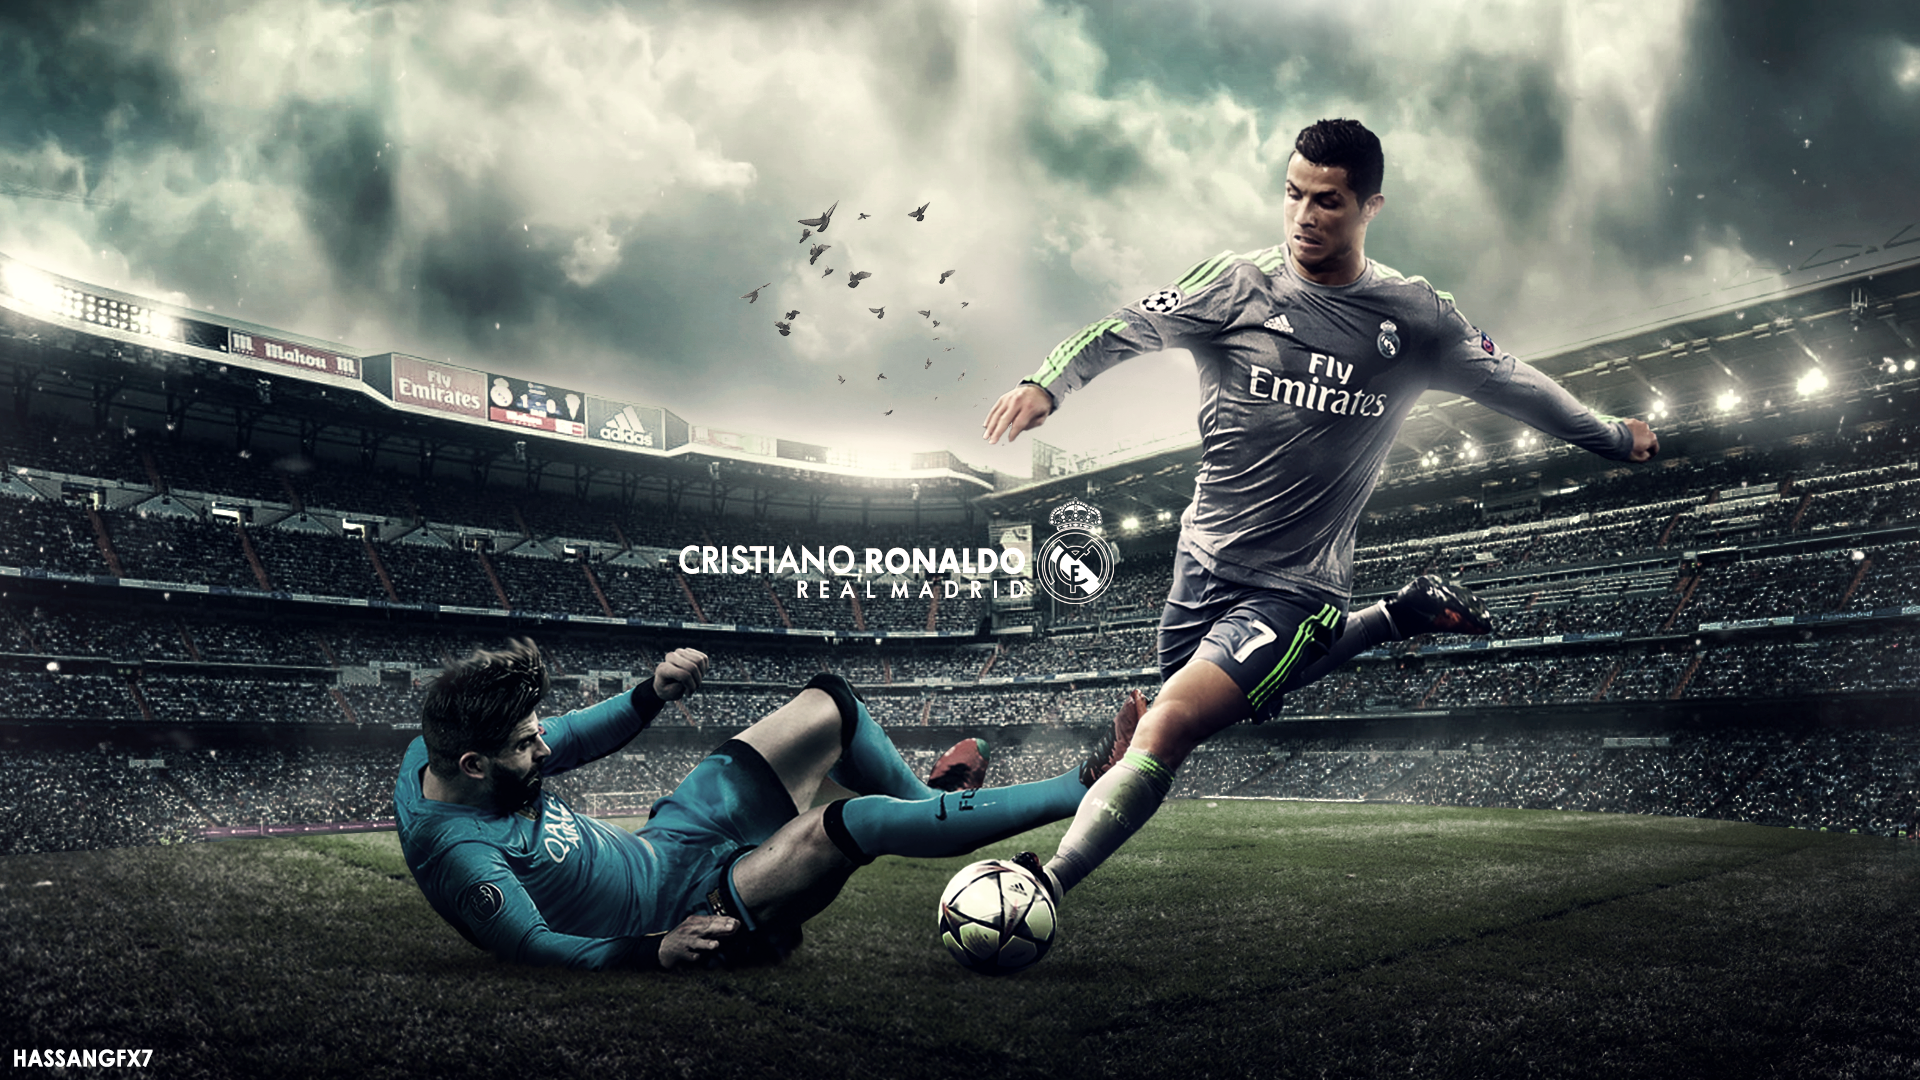 Cristiano ronaldo wallpaper 201617 by hassangfx7 on deviantart cristiano ronaldo wallpaper 201617 by hassangfx7 voltagebd Images